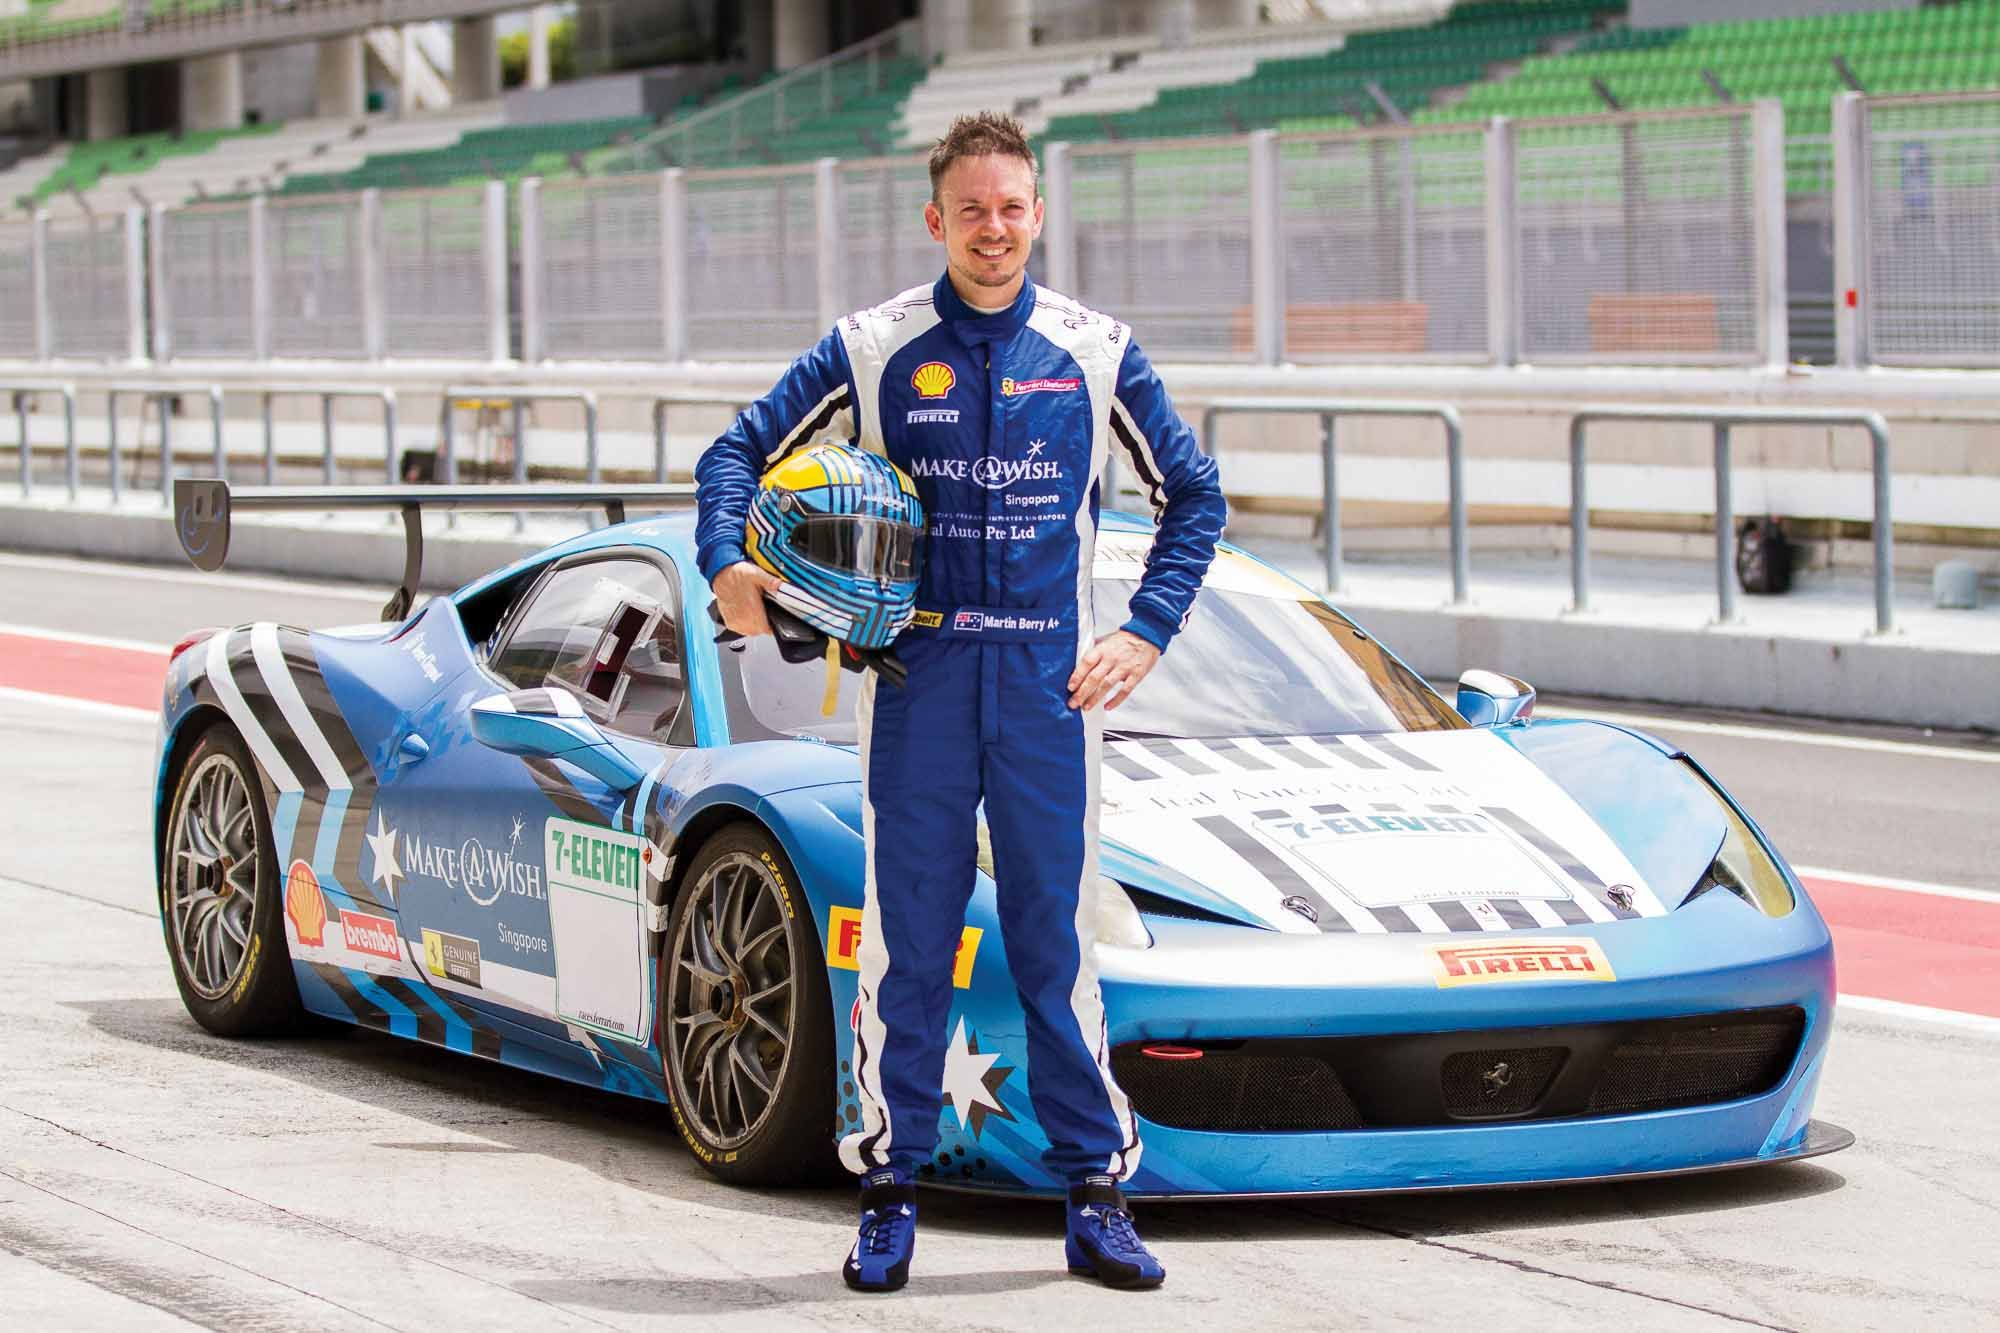 5 Minutes With... Martin Berry, Singapore's Newest Ferrari Challenge Asia-Pacific Driver